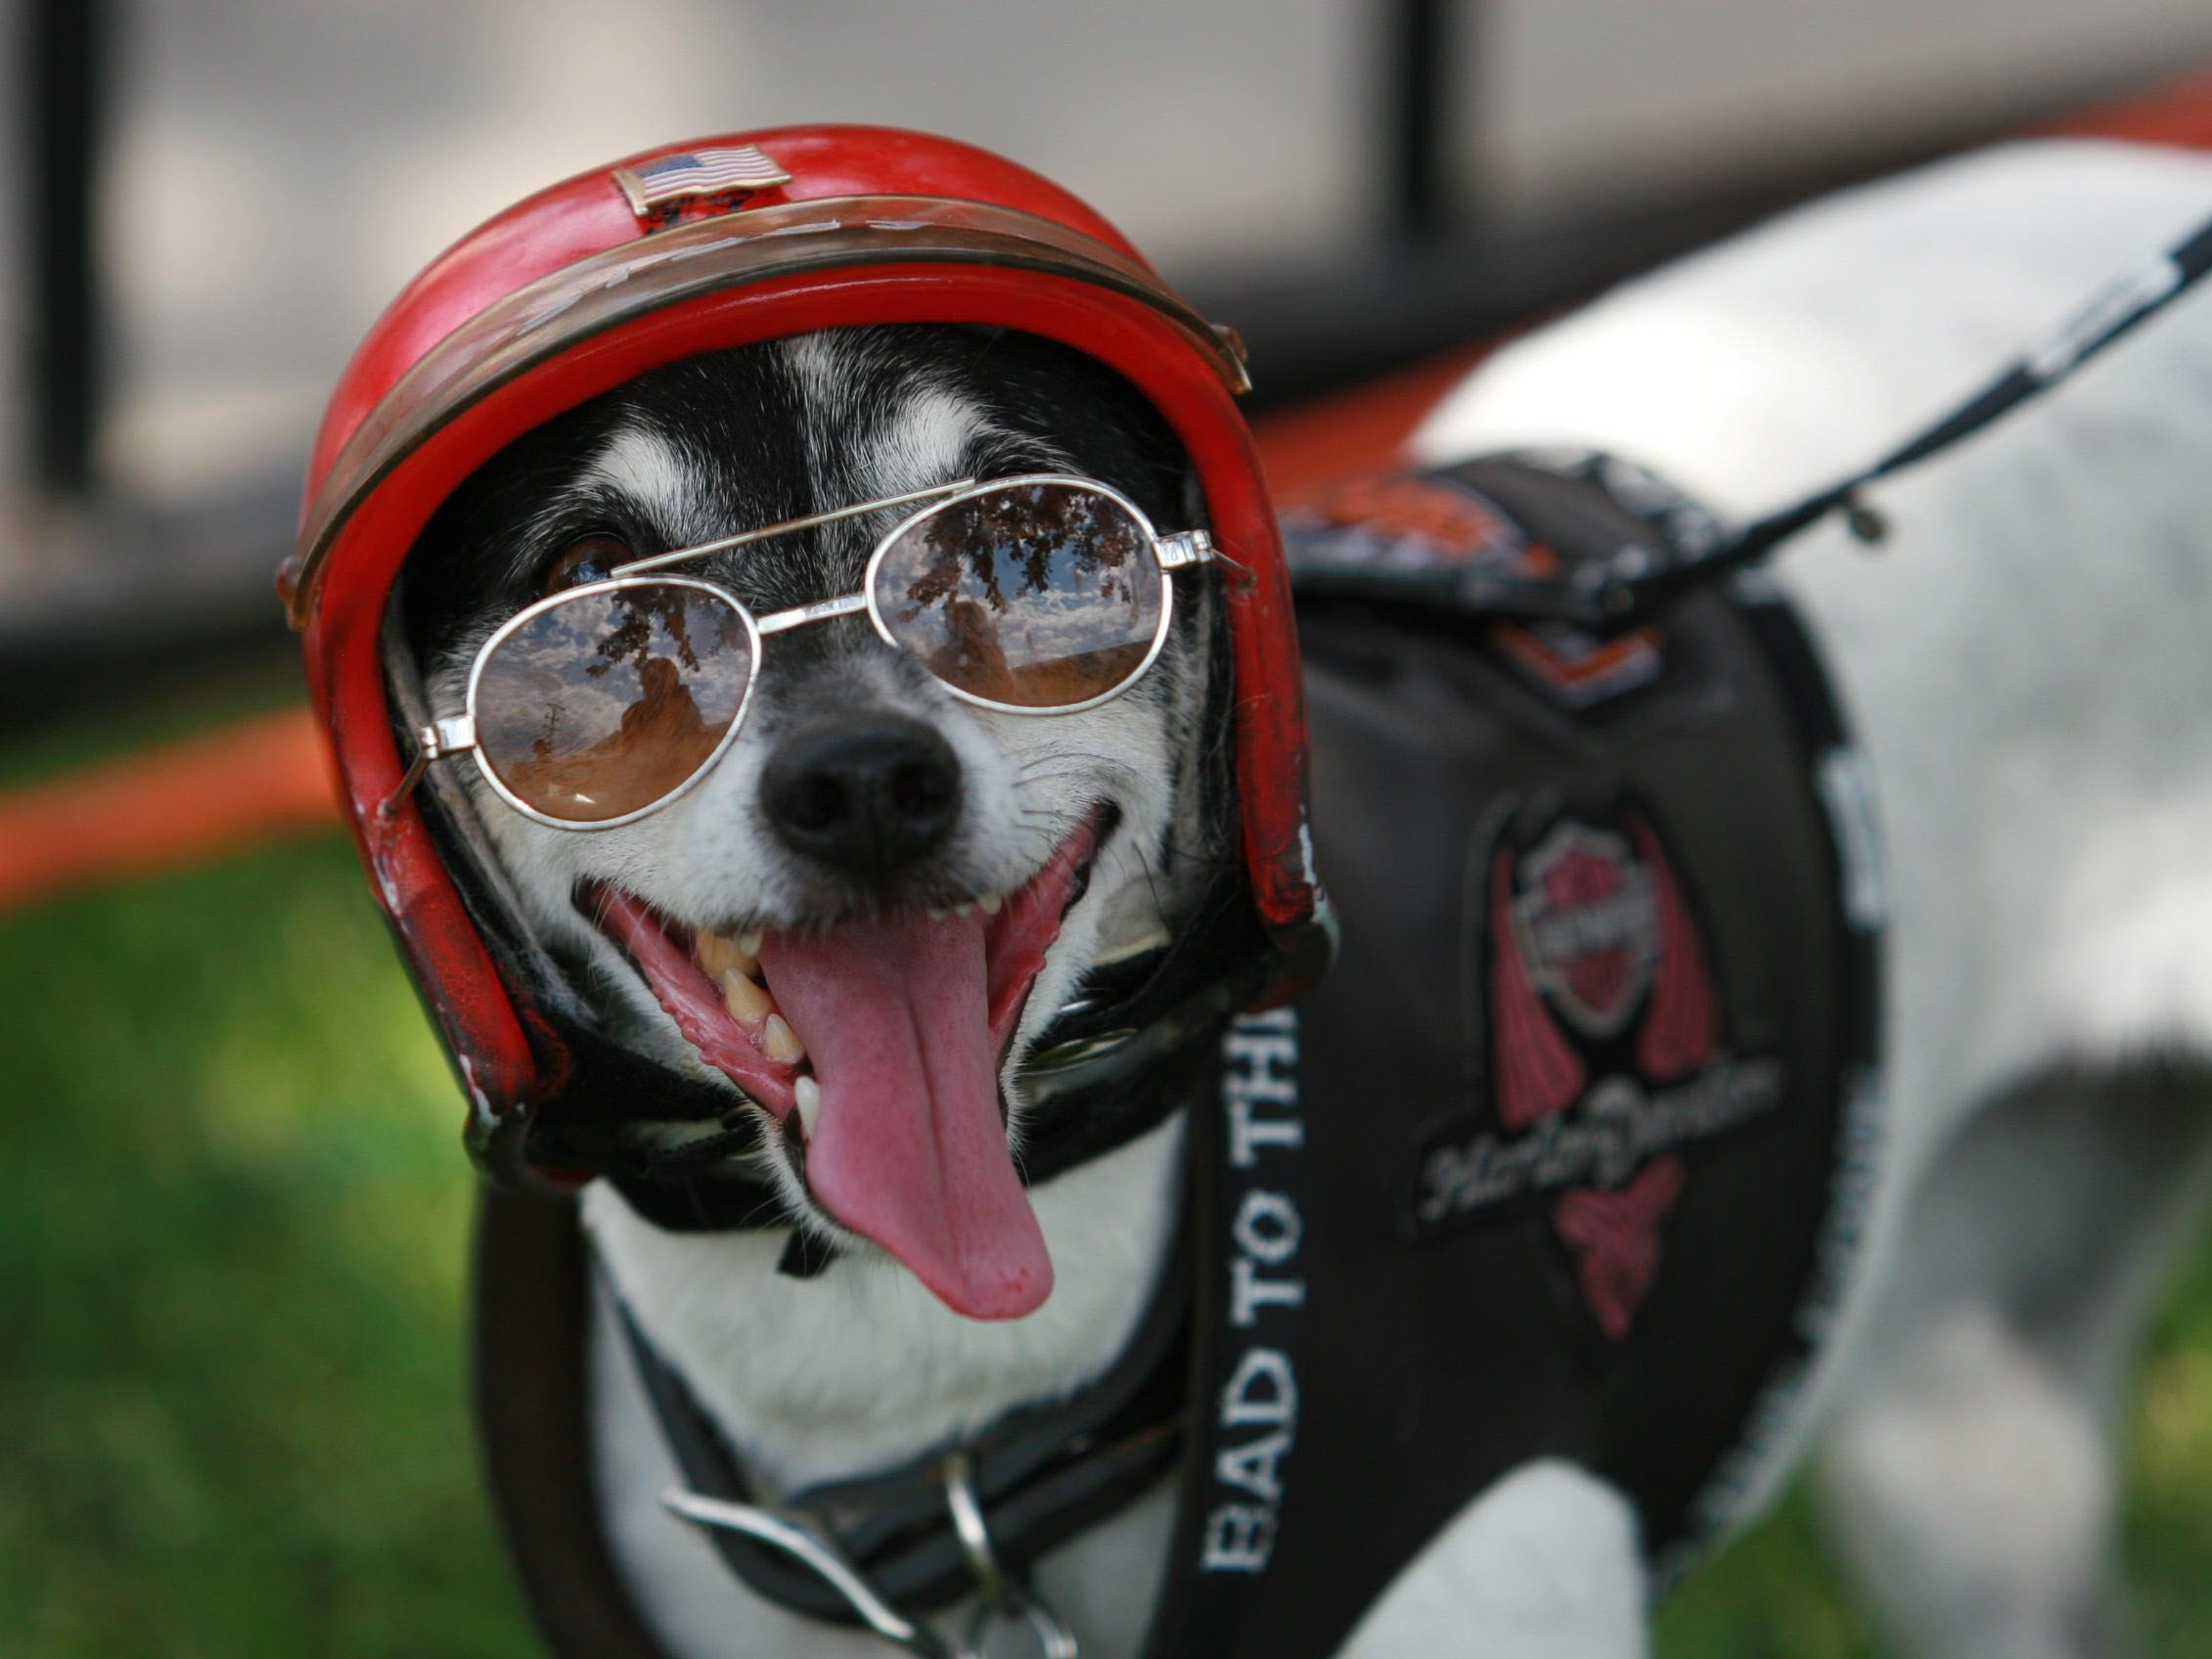 2012: Visitors bring families and pets to the annual bike week in Sturgis.